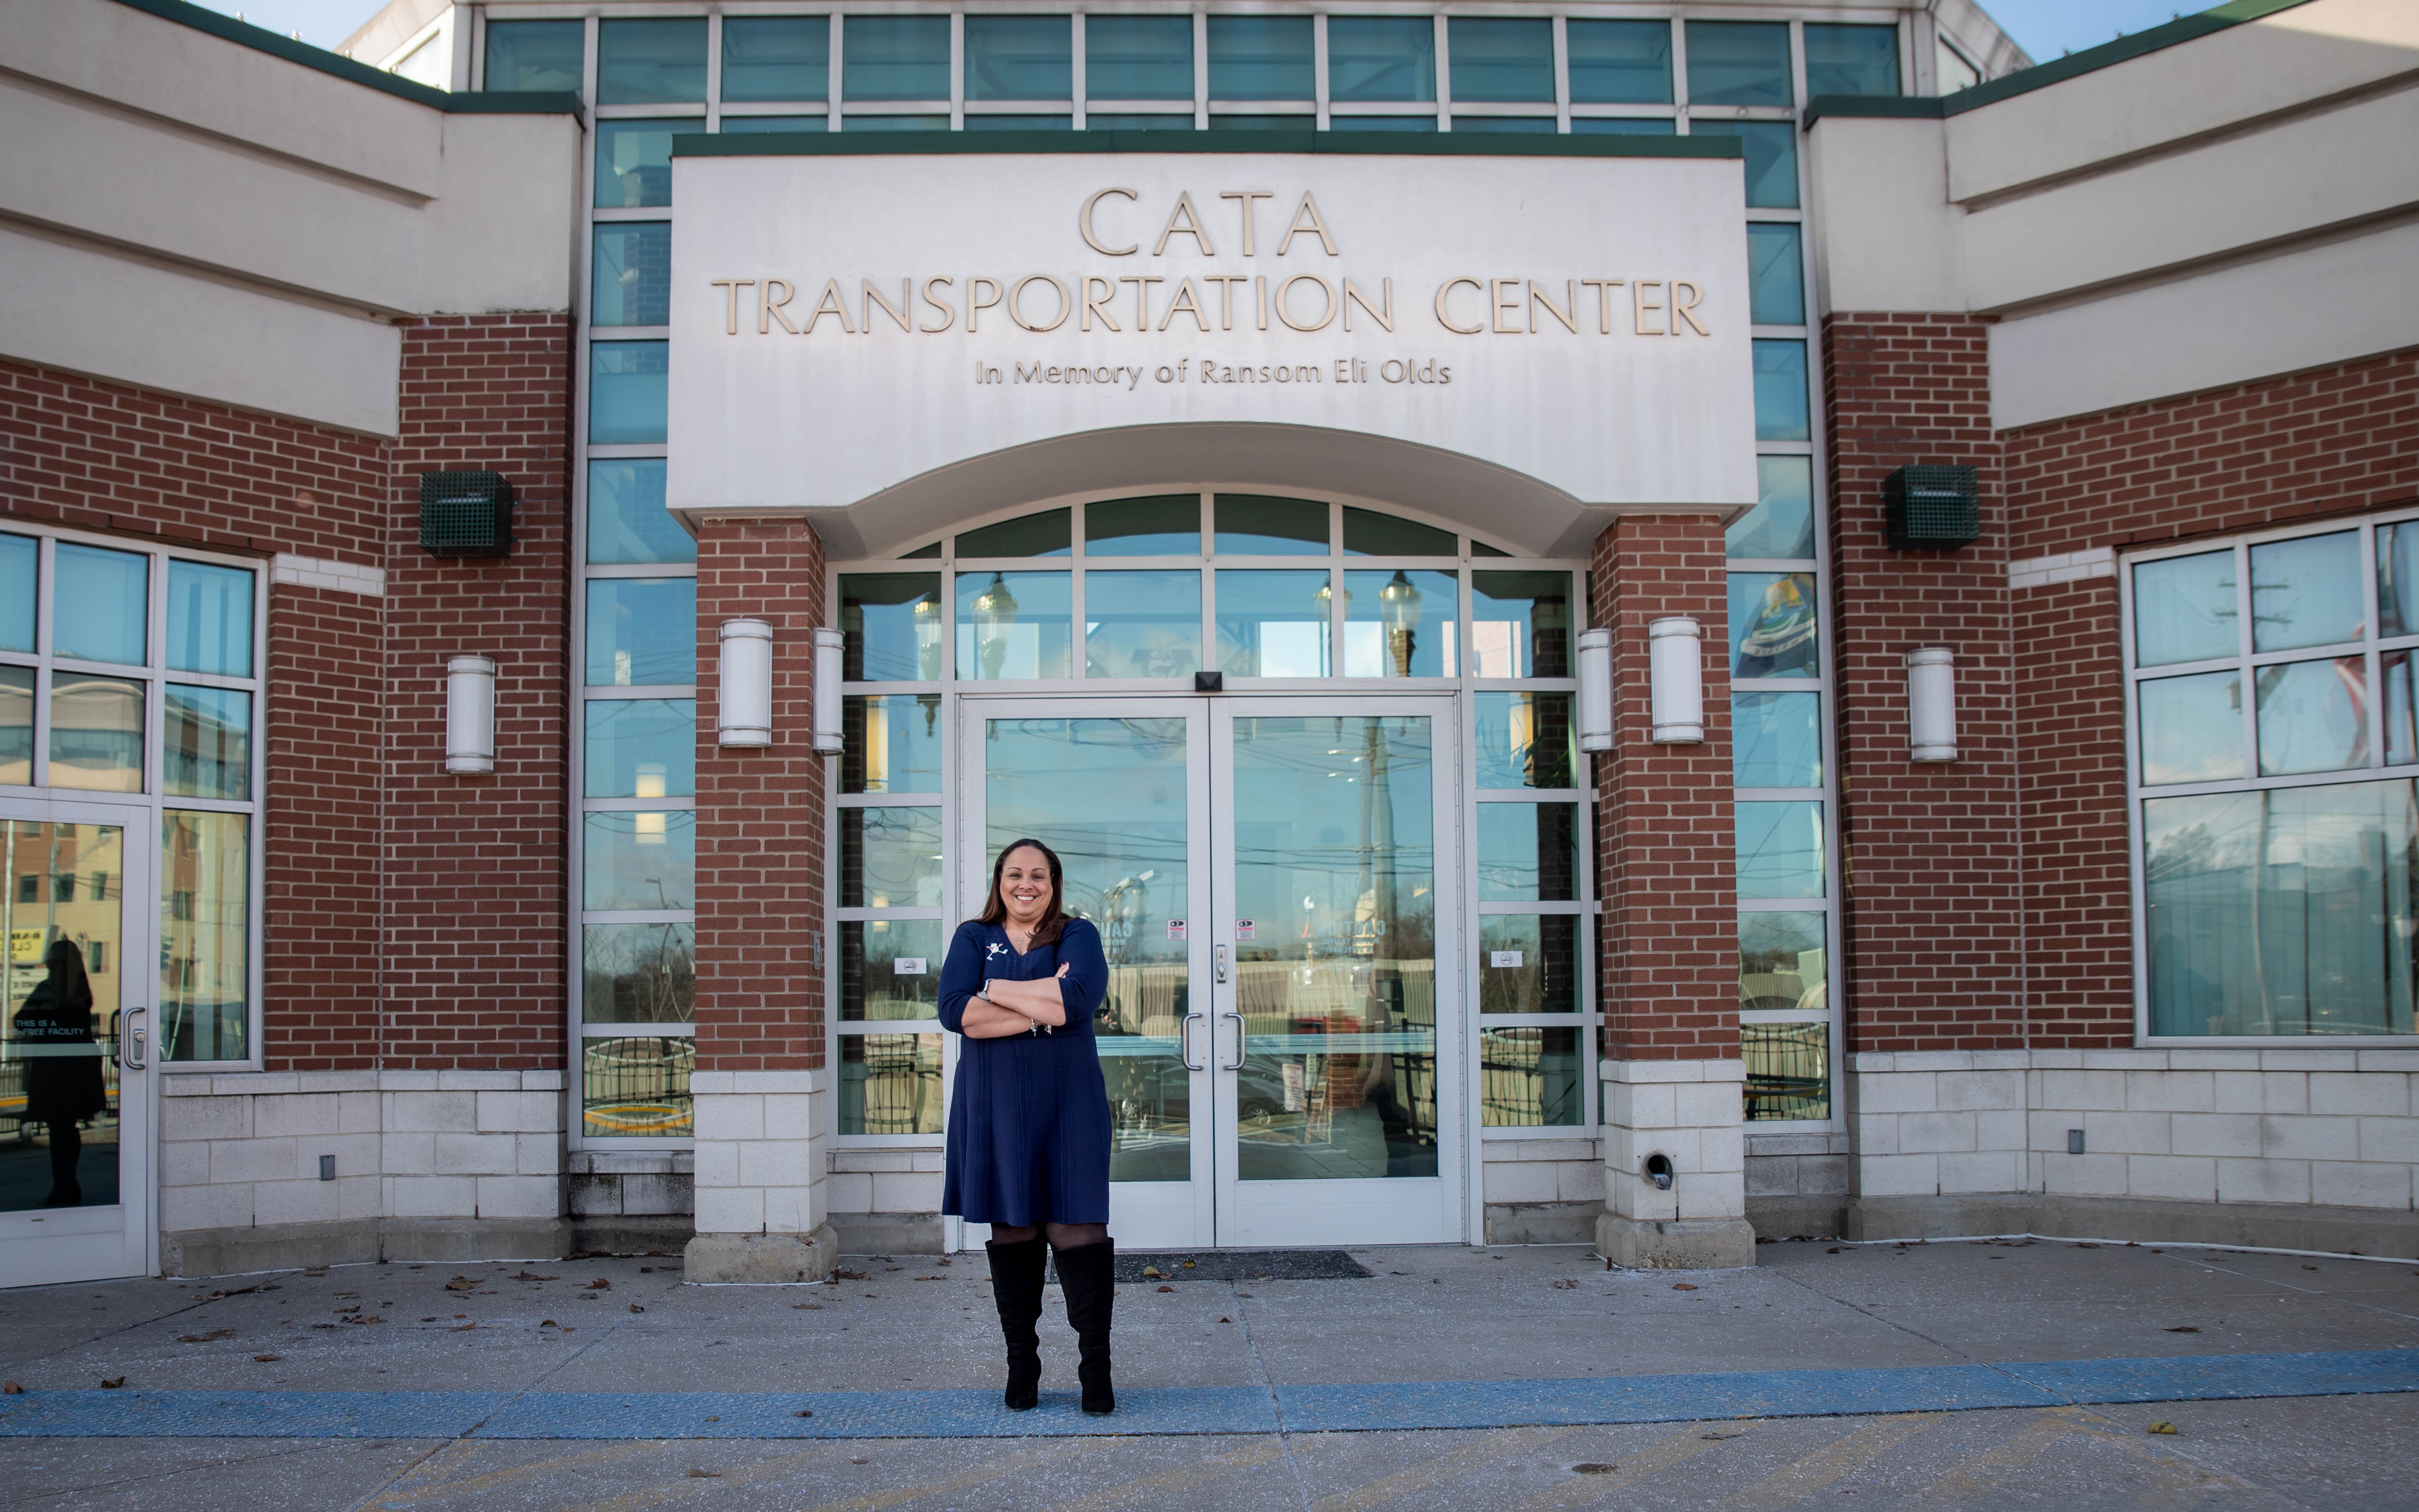 Customer Experience Manager Margaret Stephens stands in front of the CATA Transportation Center